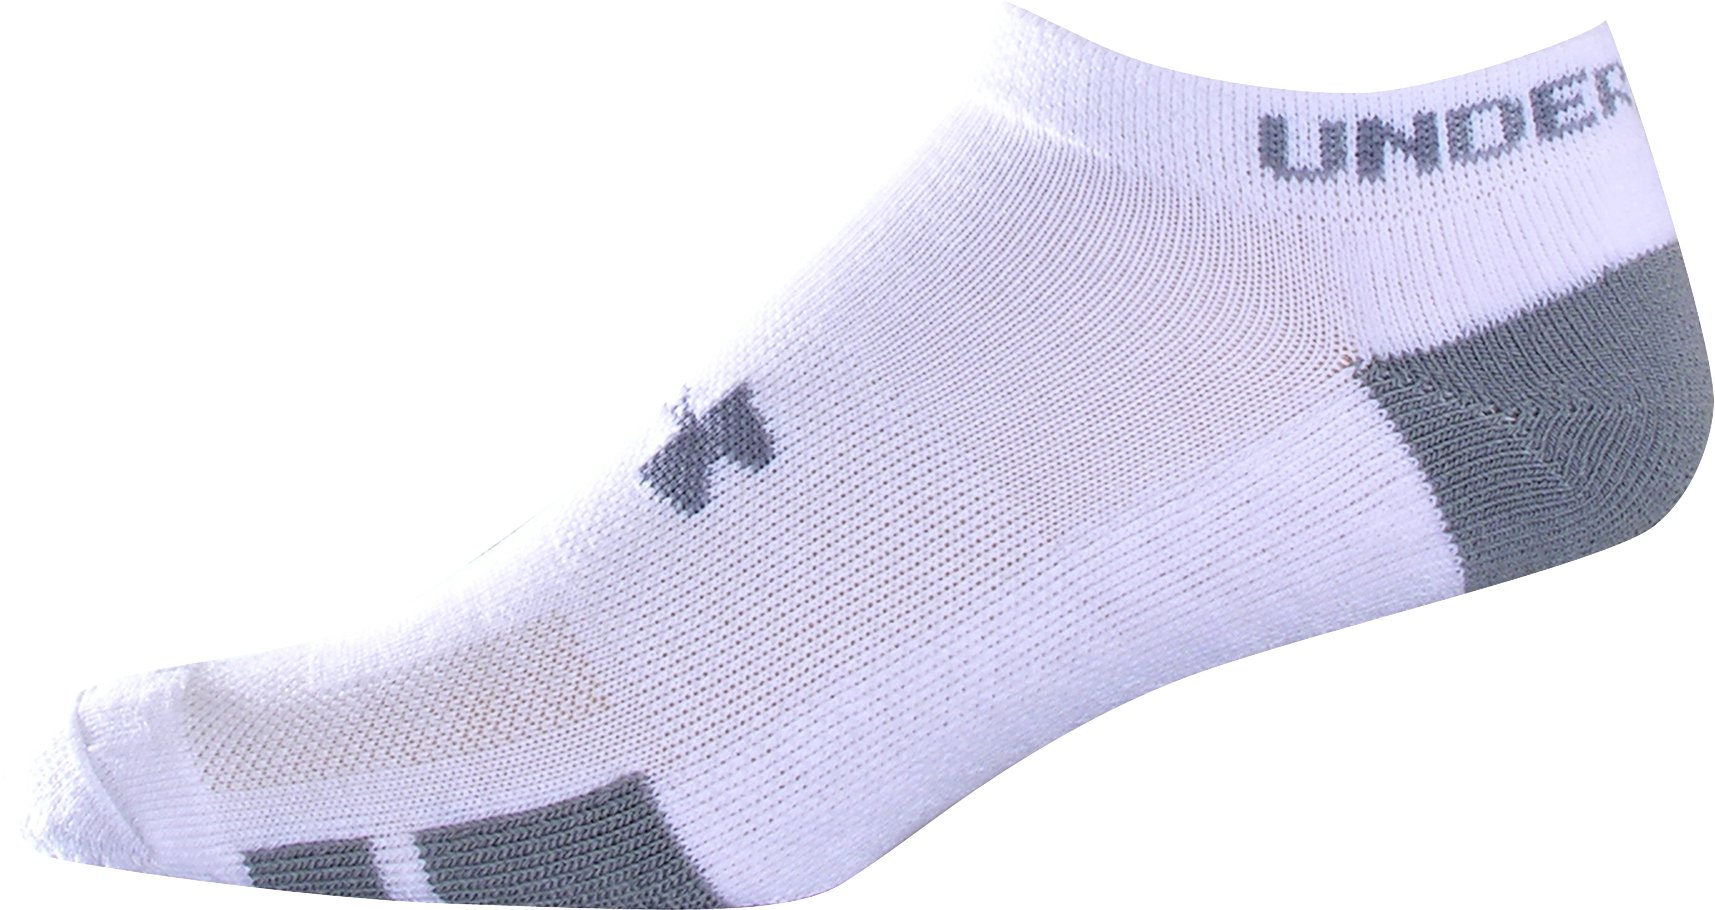 Men's Resistor No-Show Socks 6-Pack, White, zoomed image